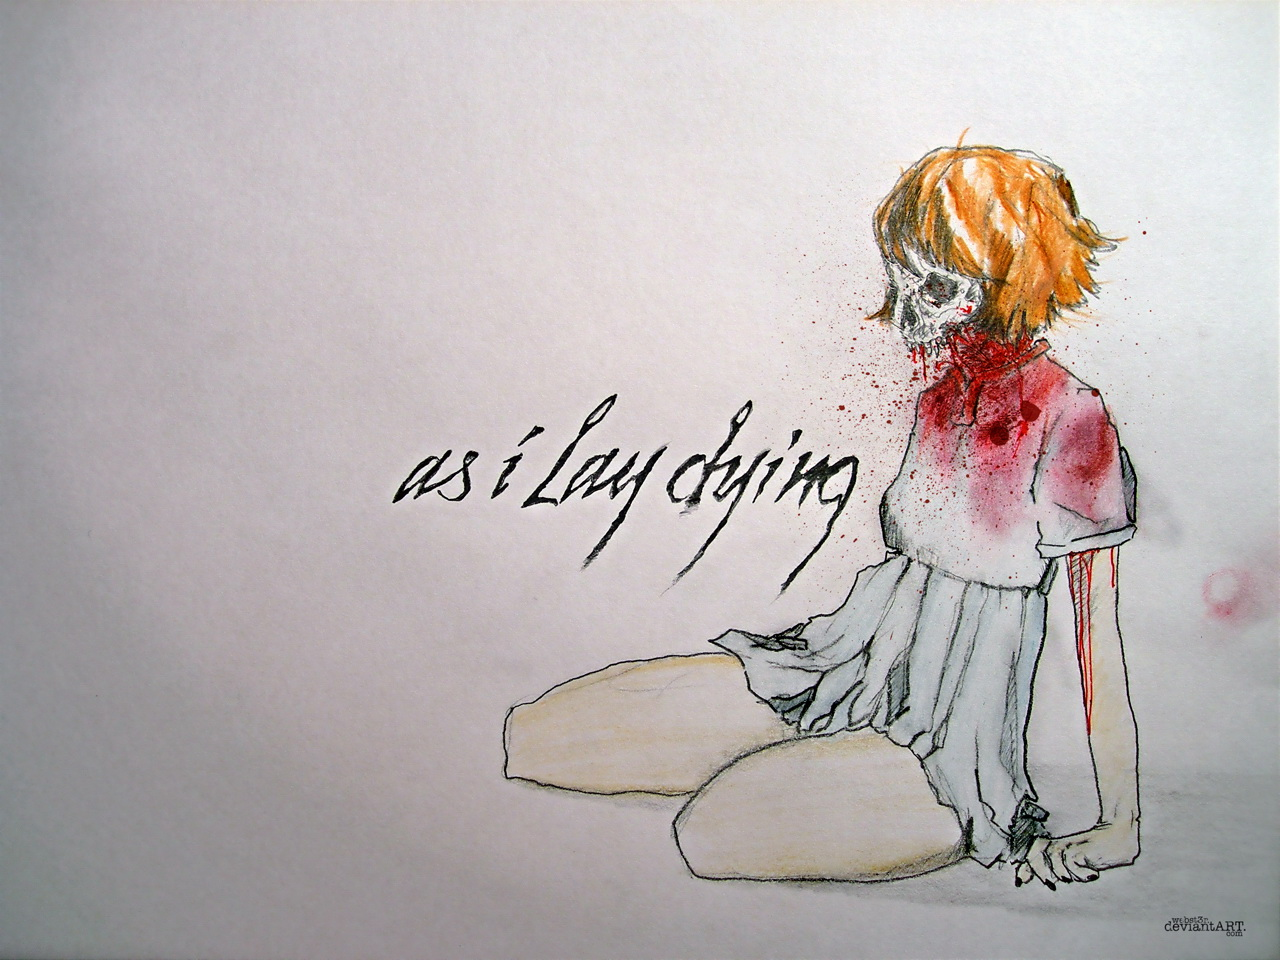 (as i lay dying M by ~Webst3R ) lay wallpaper